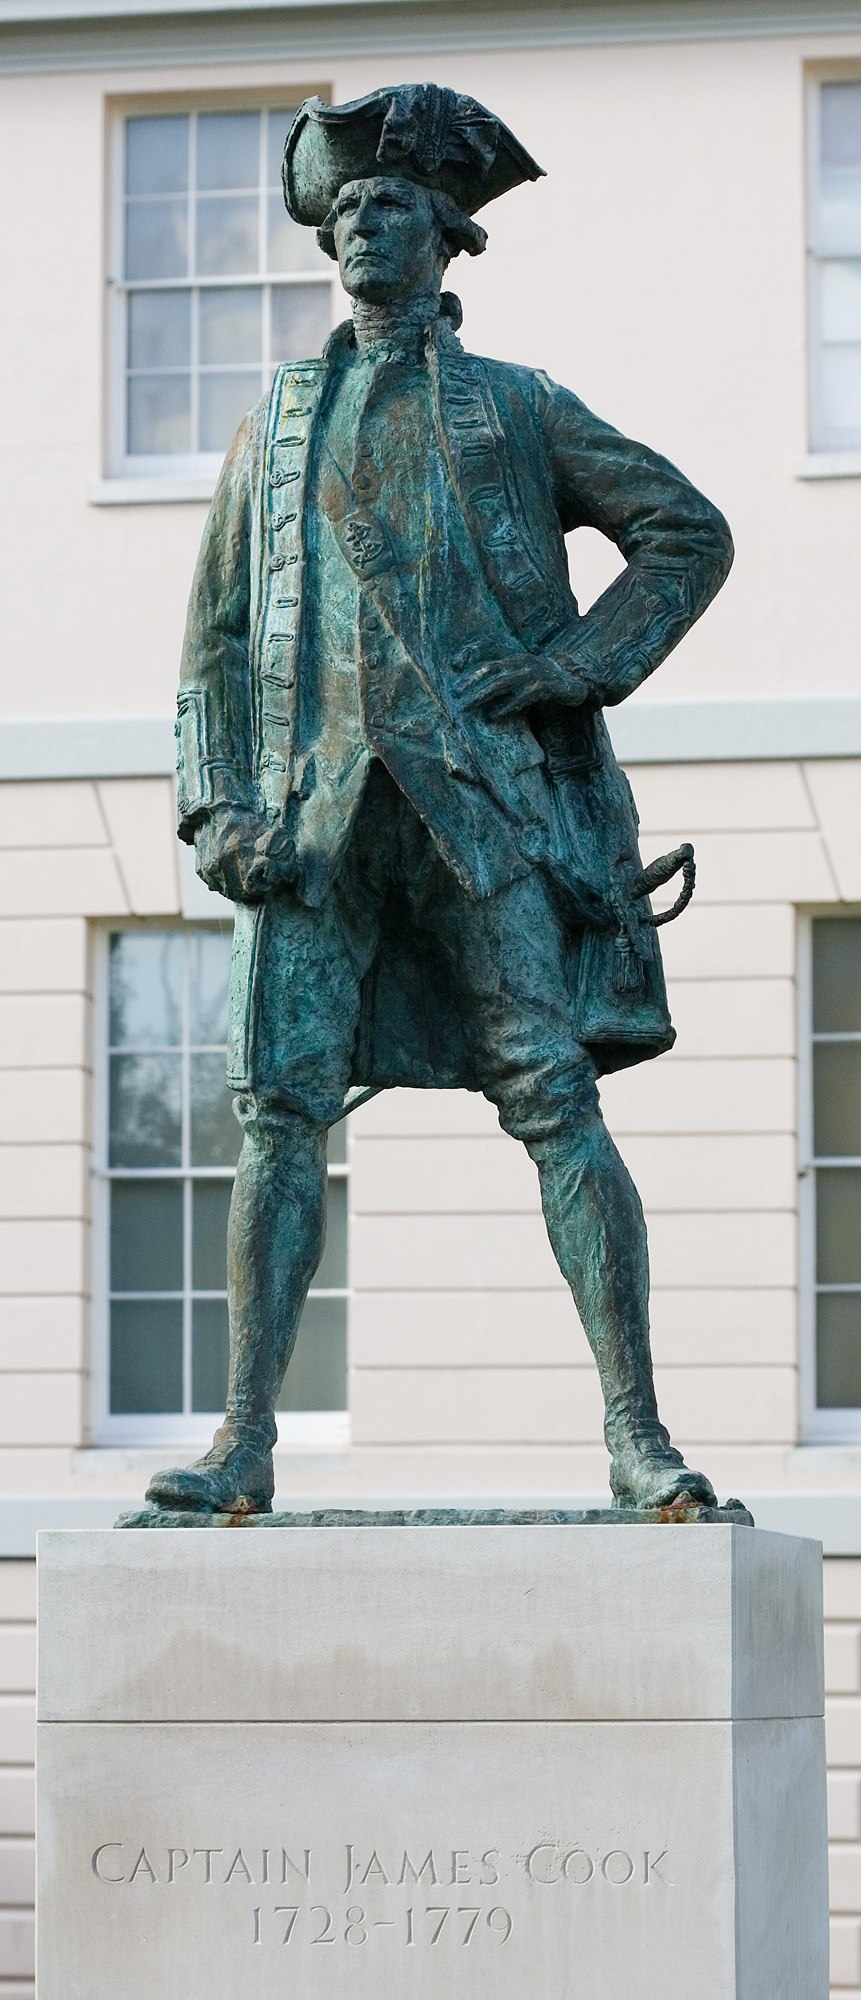 James Cook Statue in Greenwich - Oct 2006